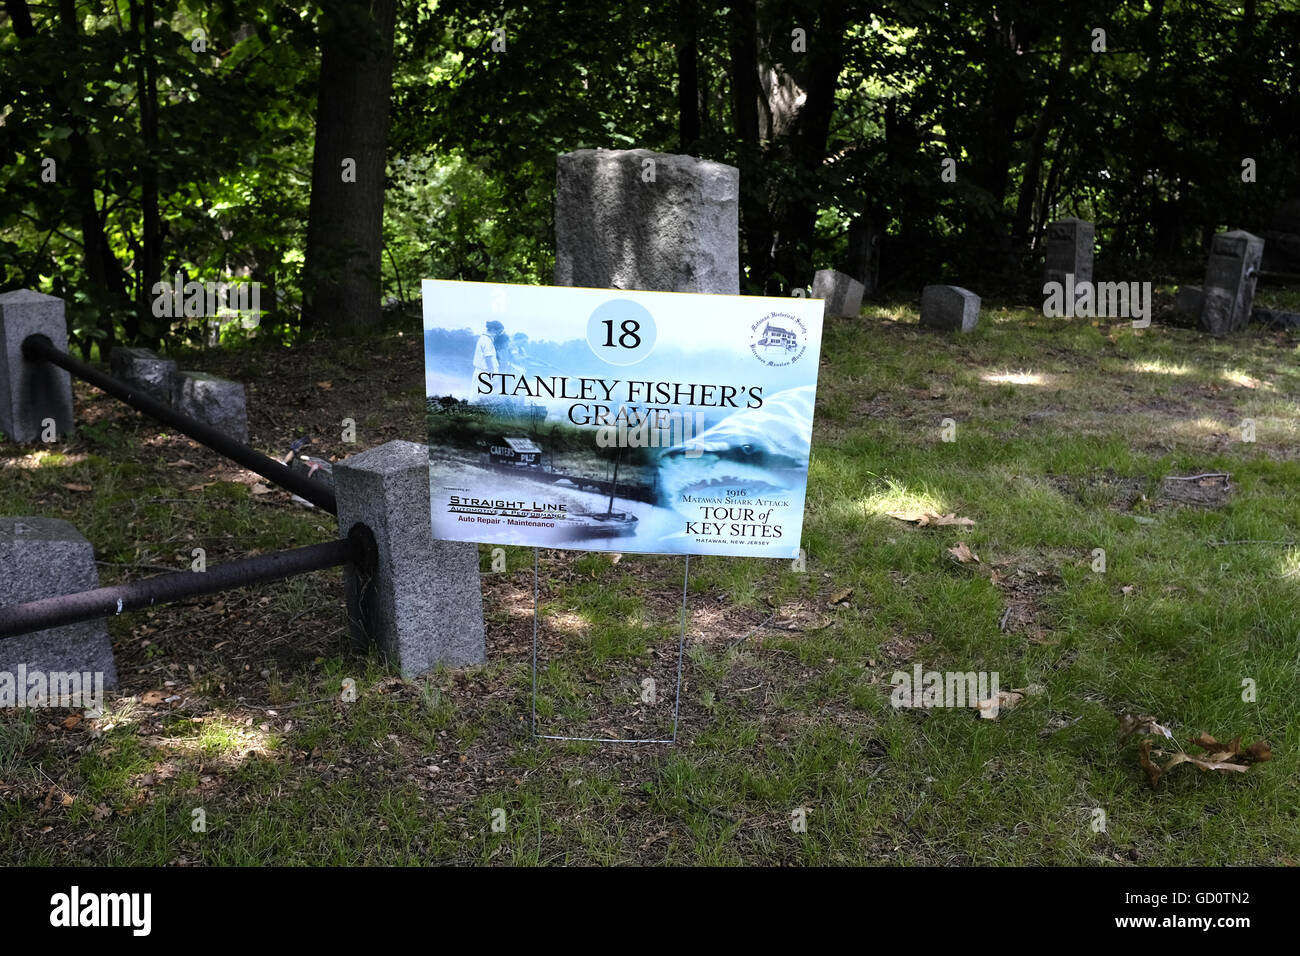 Sign for grave of Stanley Fisher's grave, who was killed in the New Jersey shore shark attacks of July 1916 - Stock Image